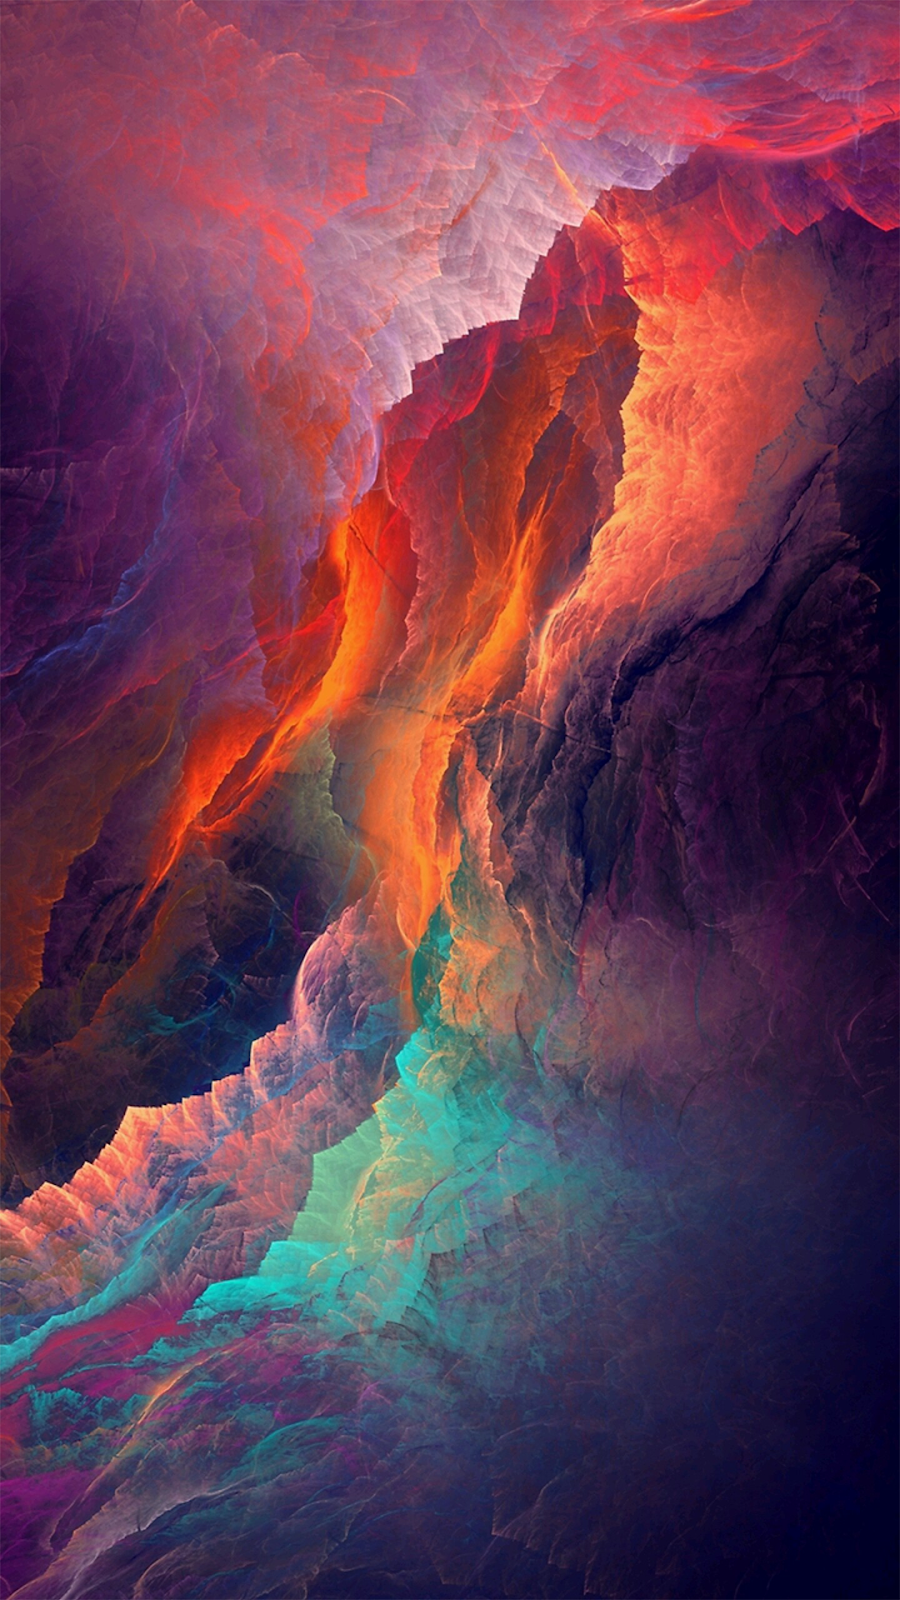 Fire Abstract Wallpaper Iphone Android Background Followme Iphone Wallpaper Fire Smoke Wallpaper Abstract